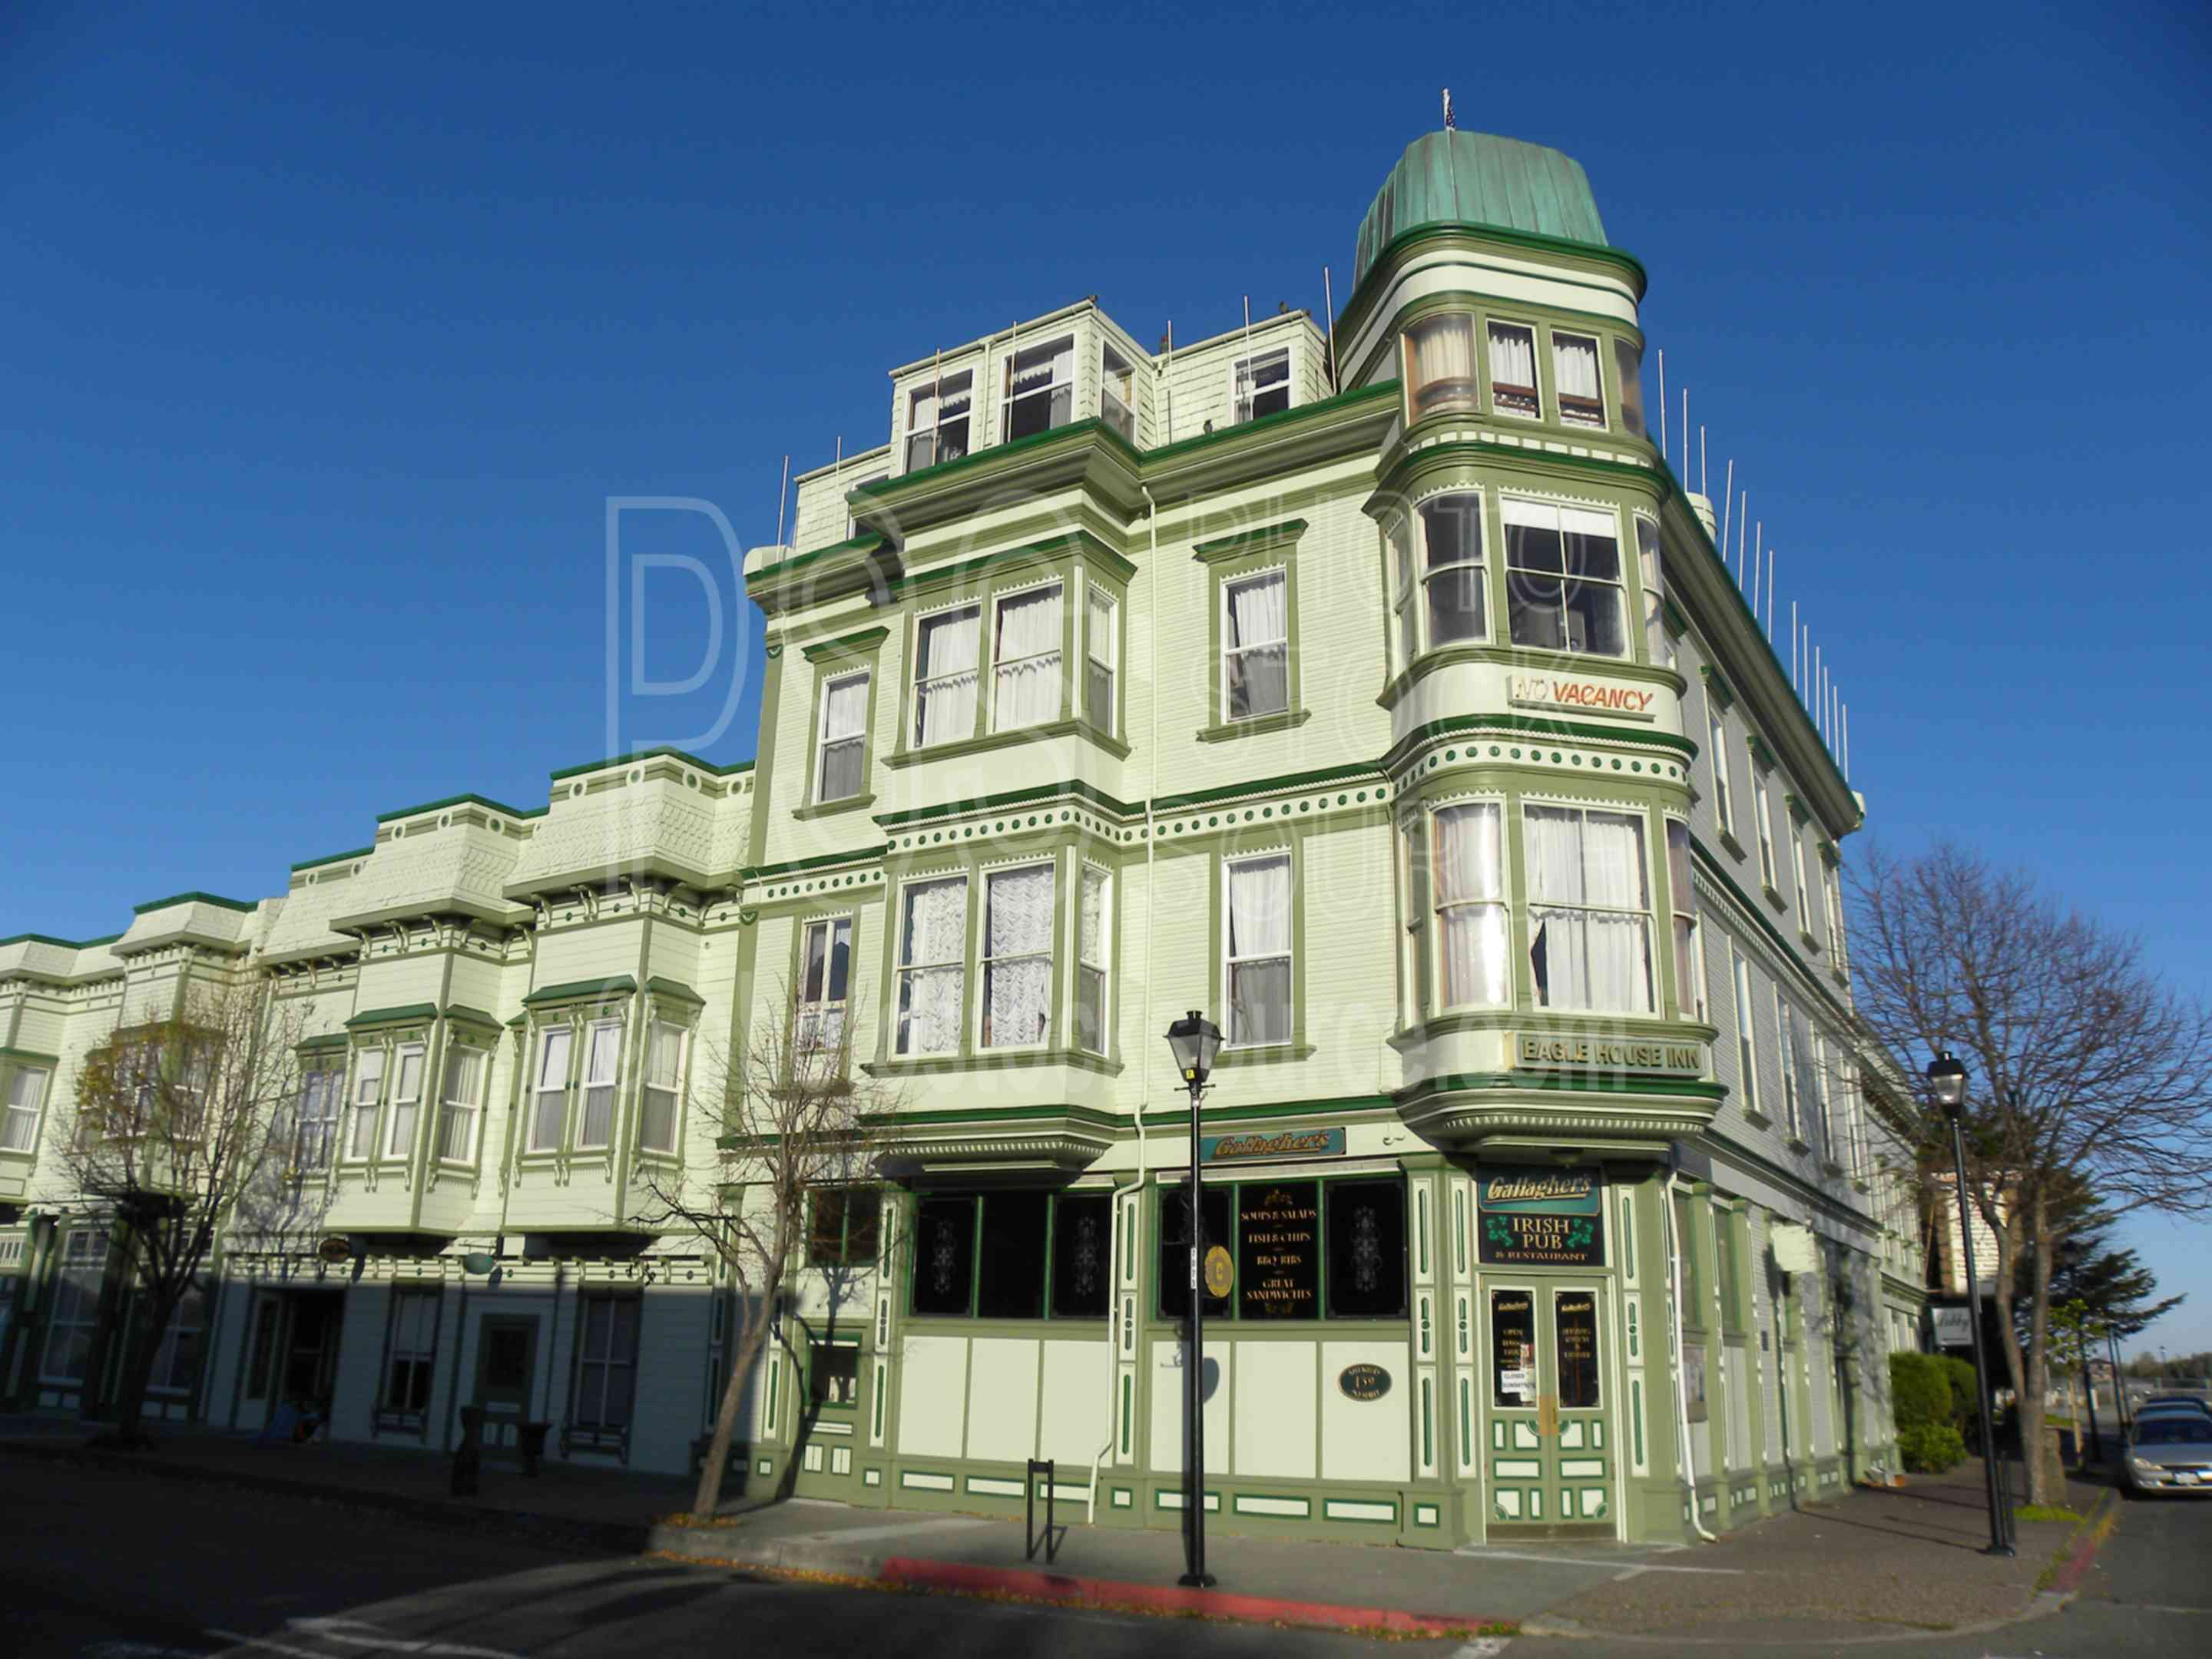 Eagle House Inn,historic,historical,building,hotel,victorian